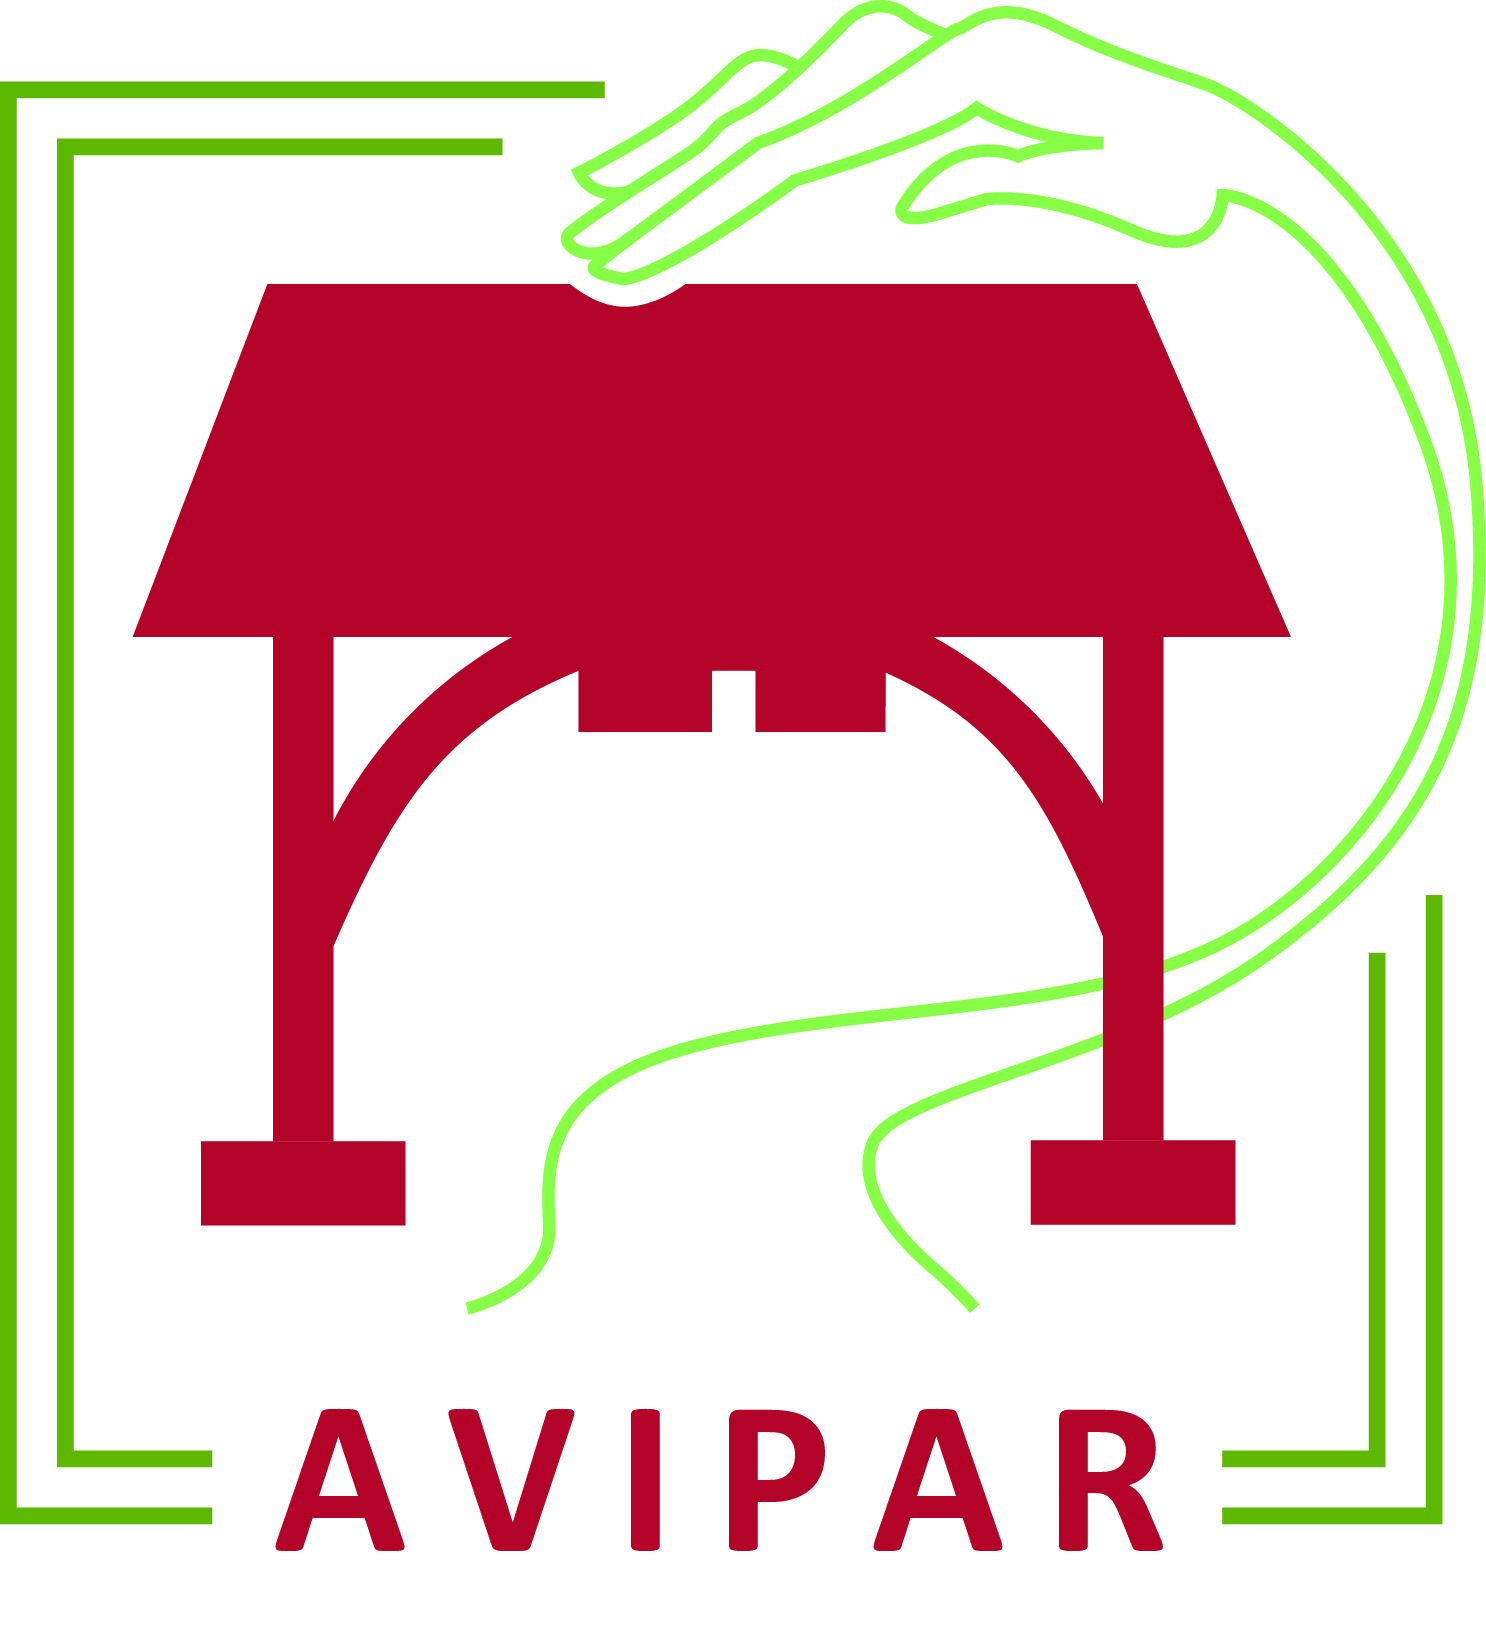 Association - AVIPAR